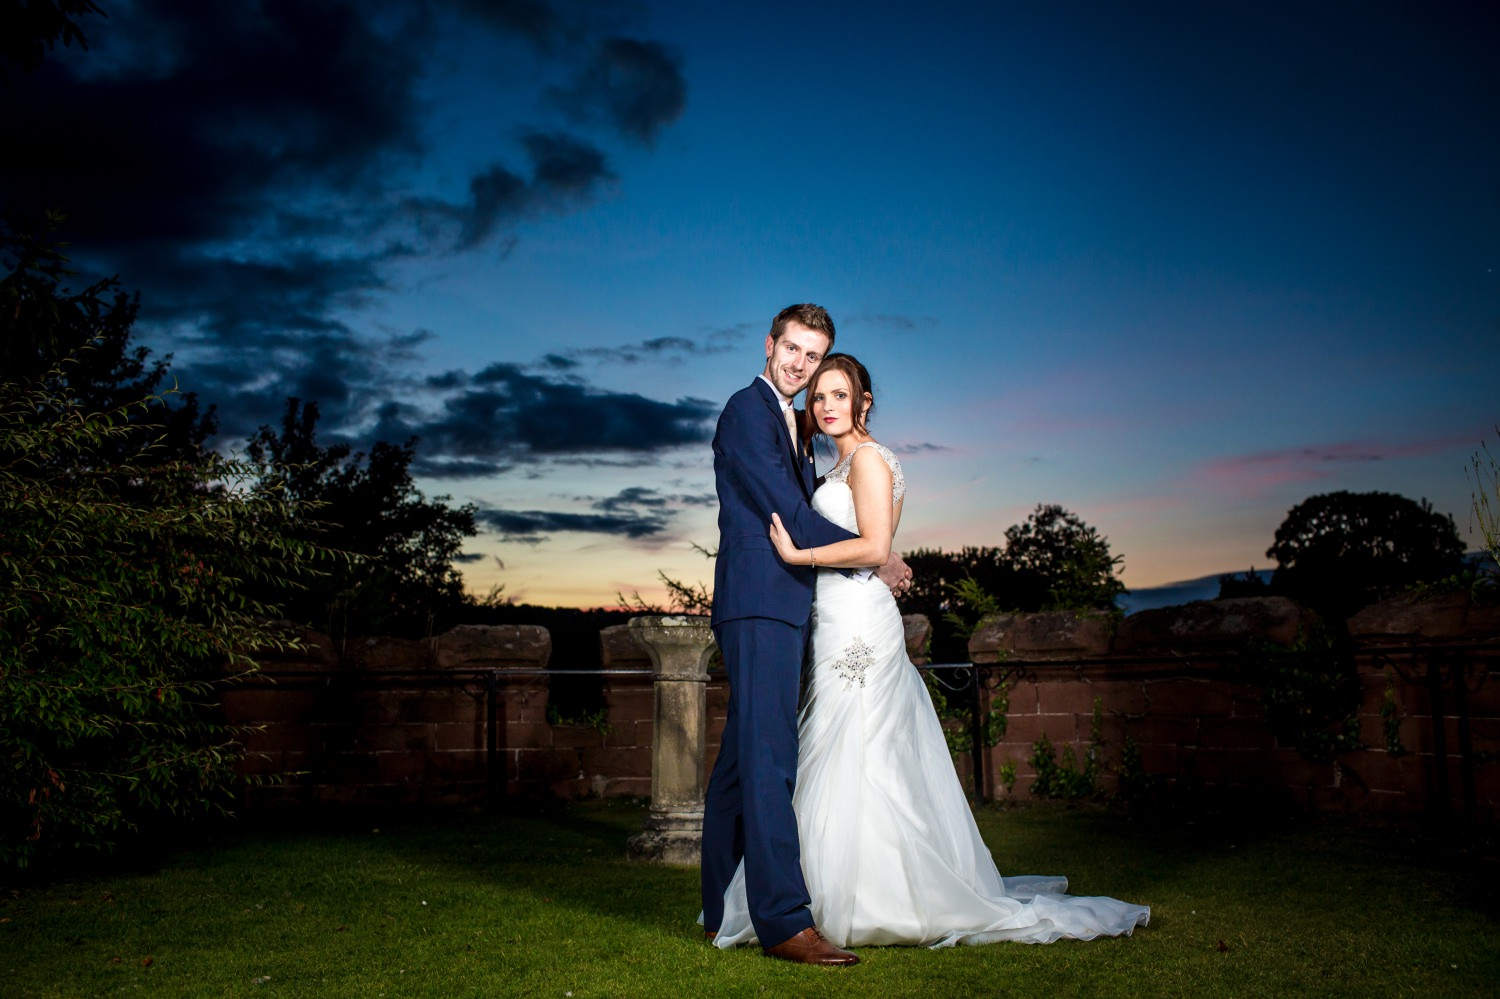 Wedding Photography evening portrait of the wedding couple in Ruthin Castle North Wales